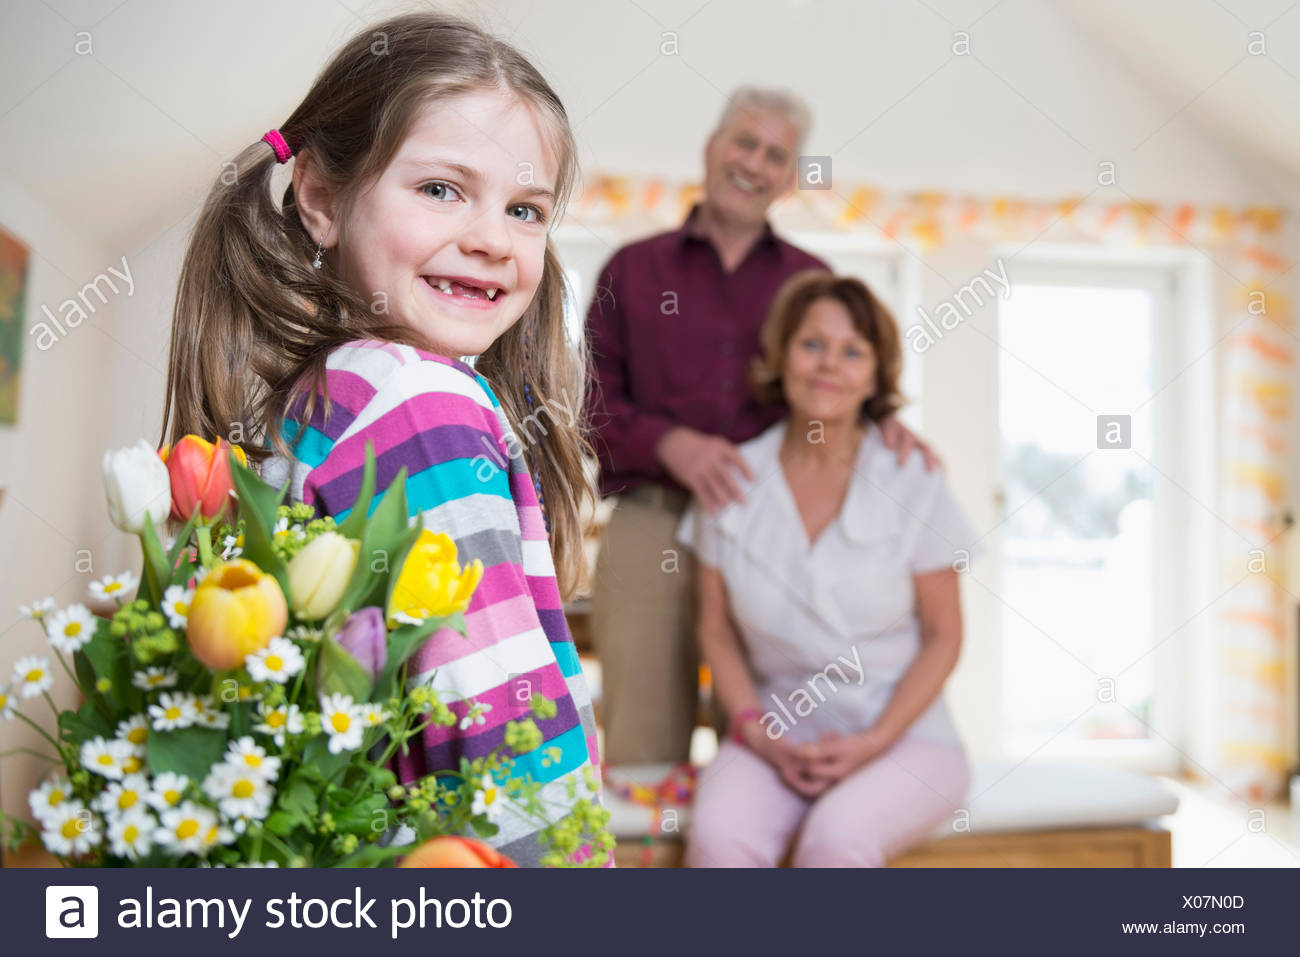 Granddaughter handover bouquet to her grandmother and grandfather in background - Stock Image